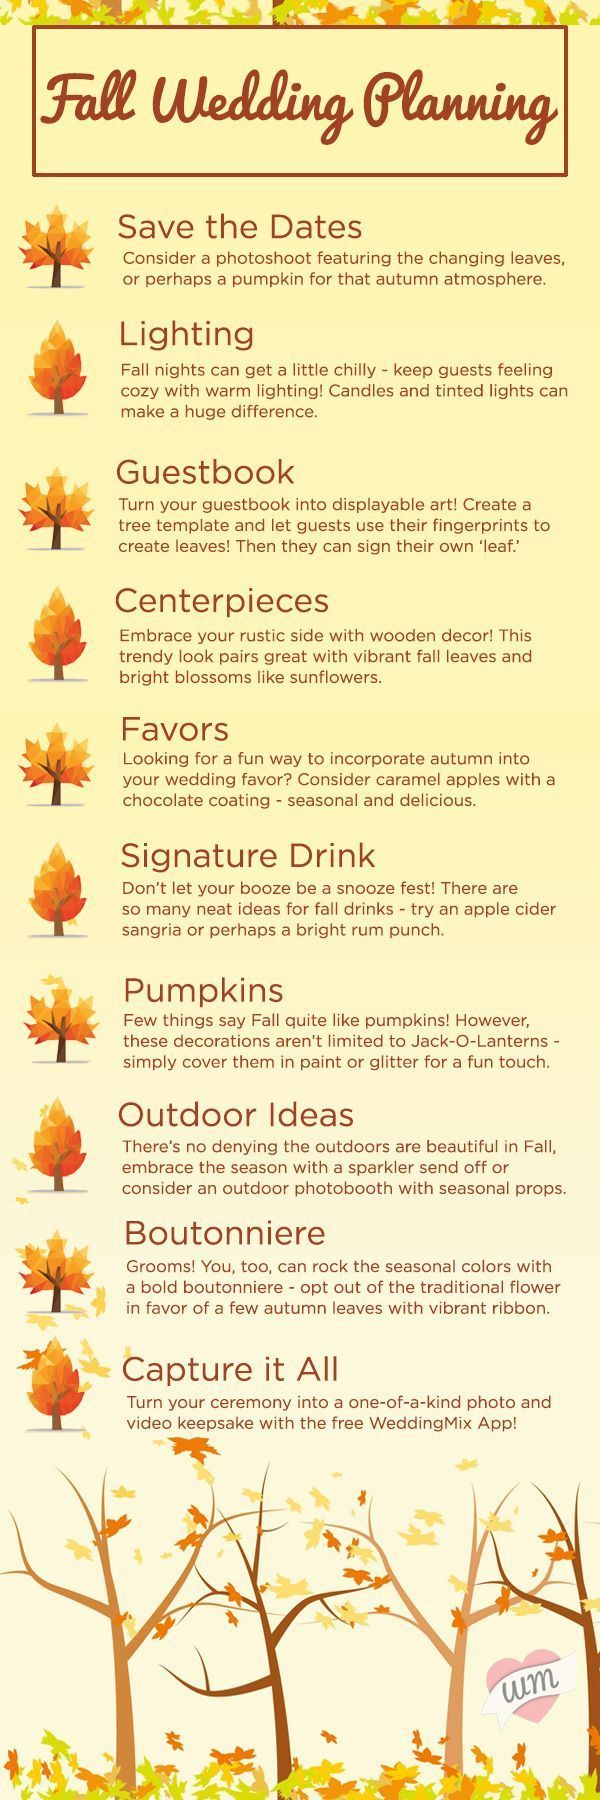 Wedding decorations reception ideas october 2018 Literally obsessed with those pumpkin centerpieces TOO cute  I can